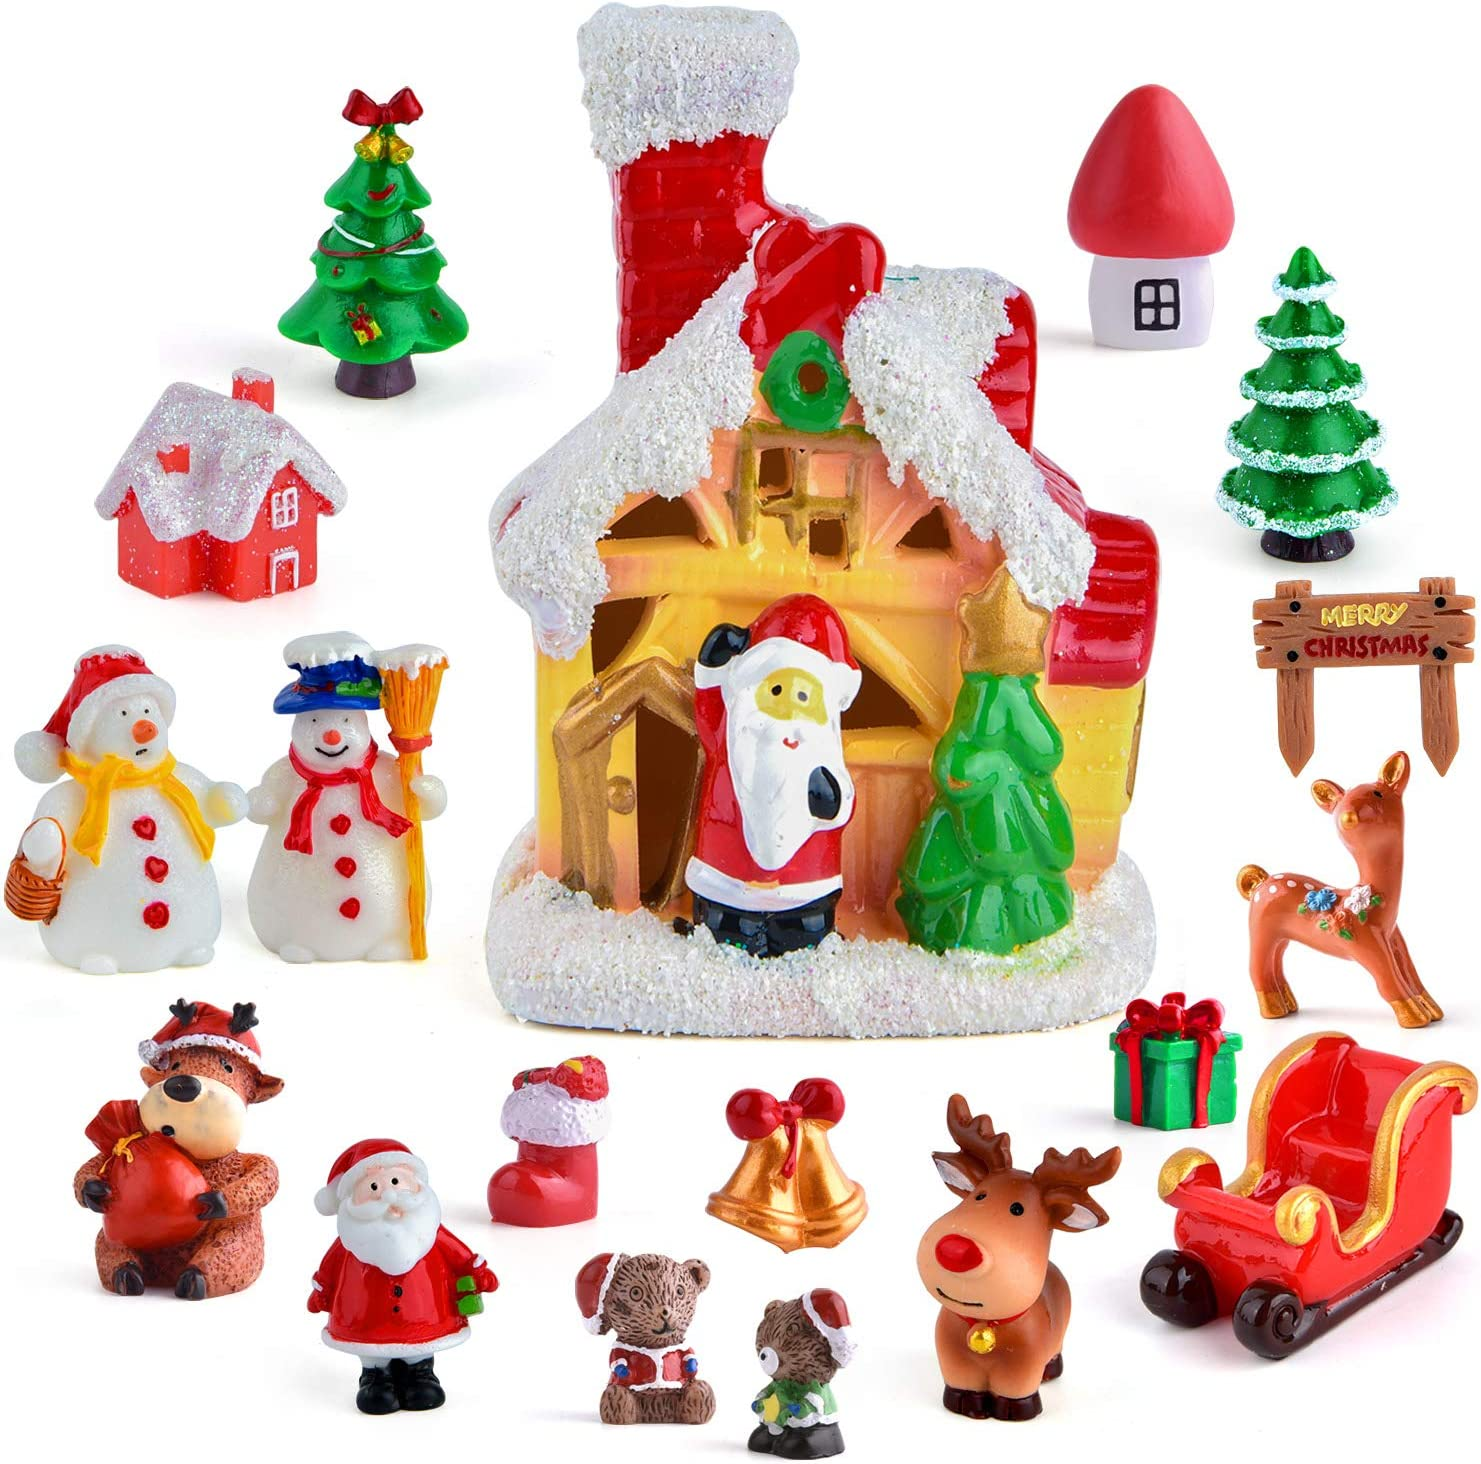 Zealor Christmas Fairy House Miniature Ornaments Kit DIY Fairy Garden Dollhouse Christmas Tree Snowman Castle Mini Ornaments for Christmas Party Decorations (Size 3)